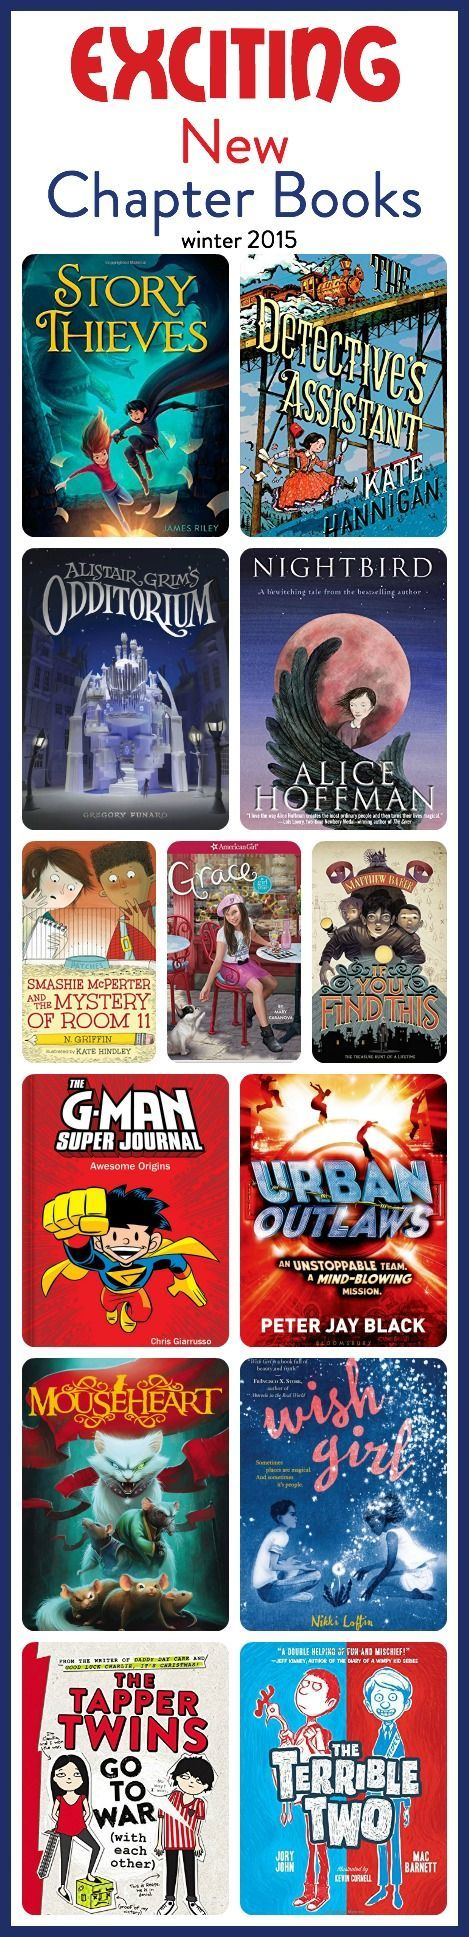 exciting new chapter books in the middle-grade range which is third grade, fourth grade, fifth grade, and sixth grade, or ages 8 - 11.